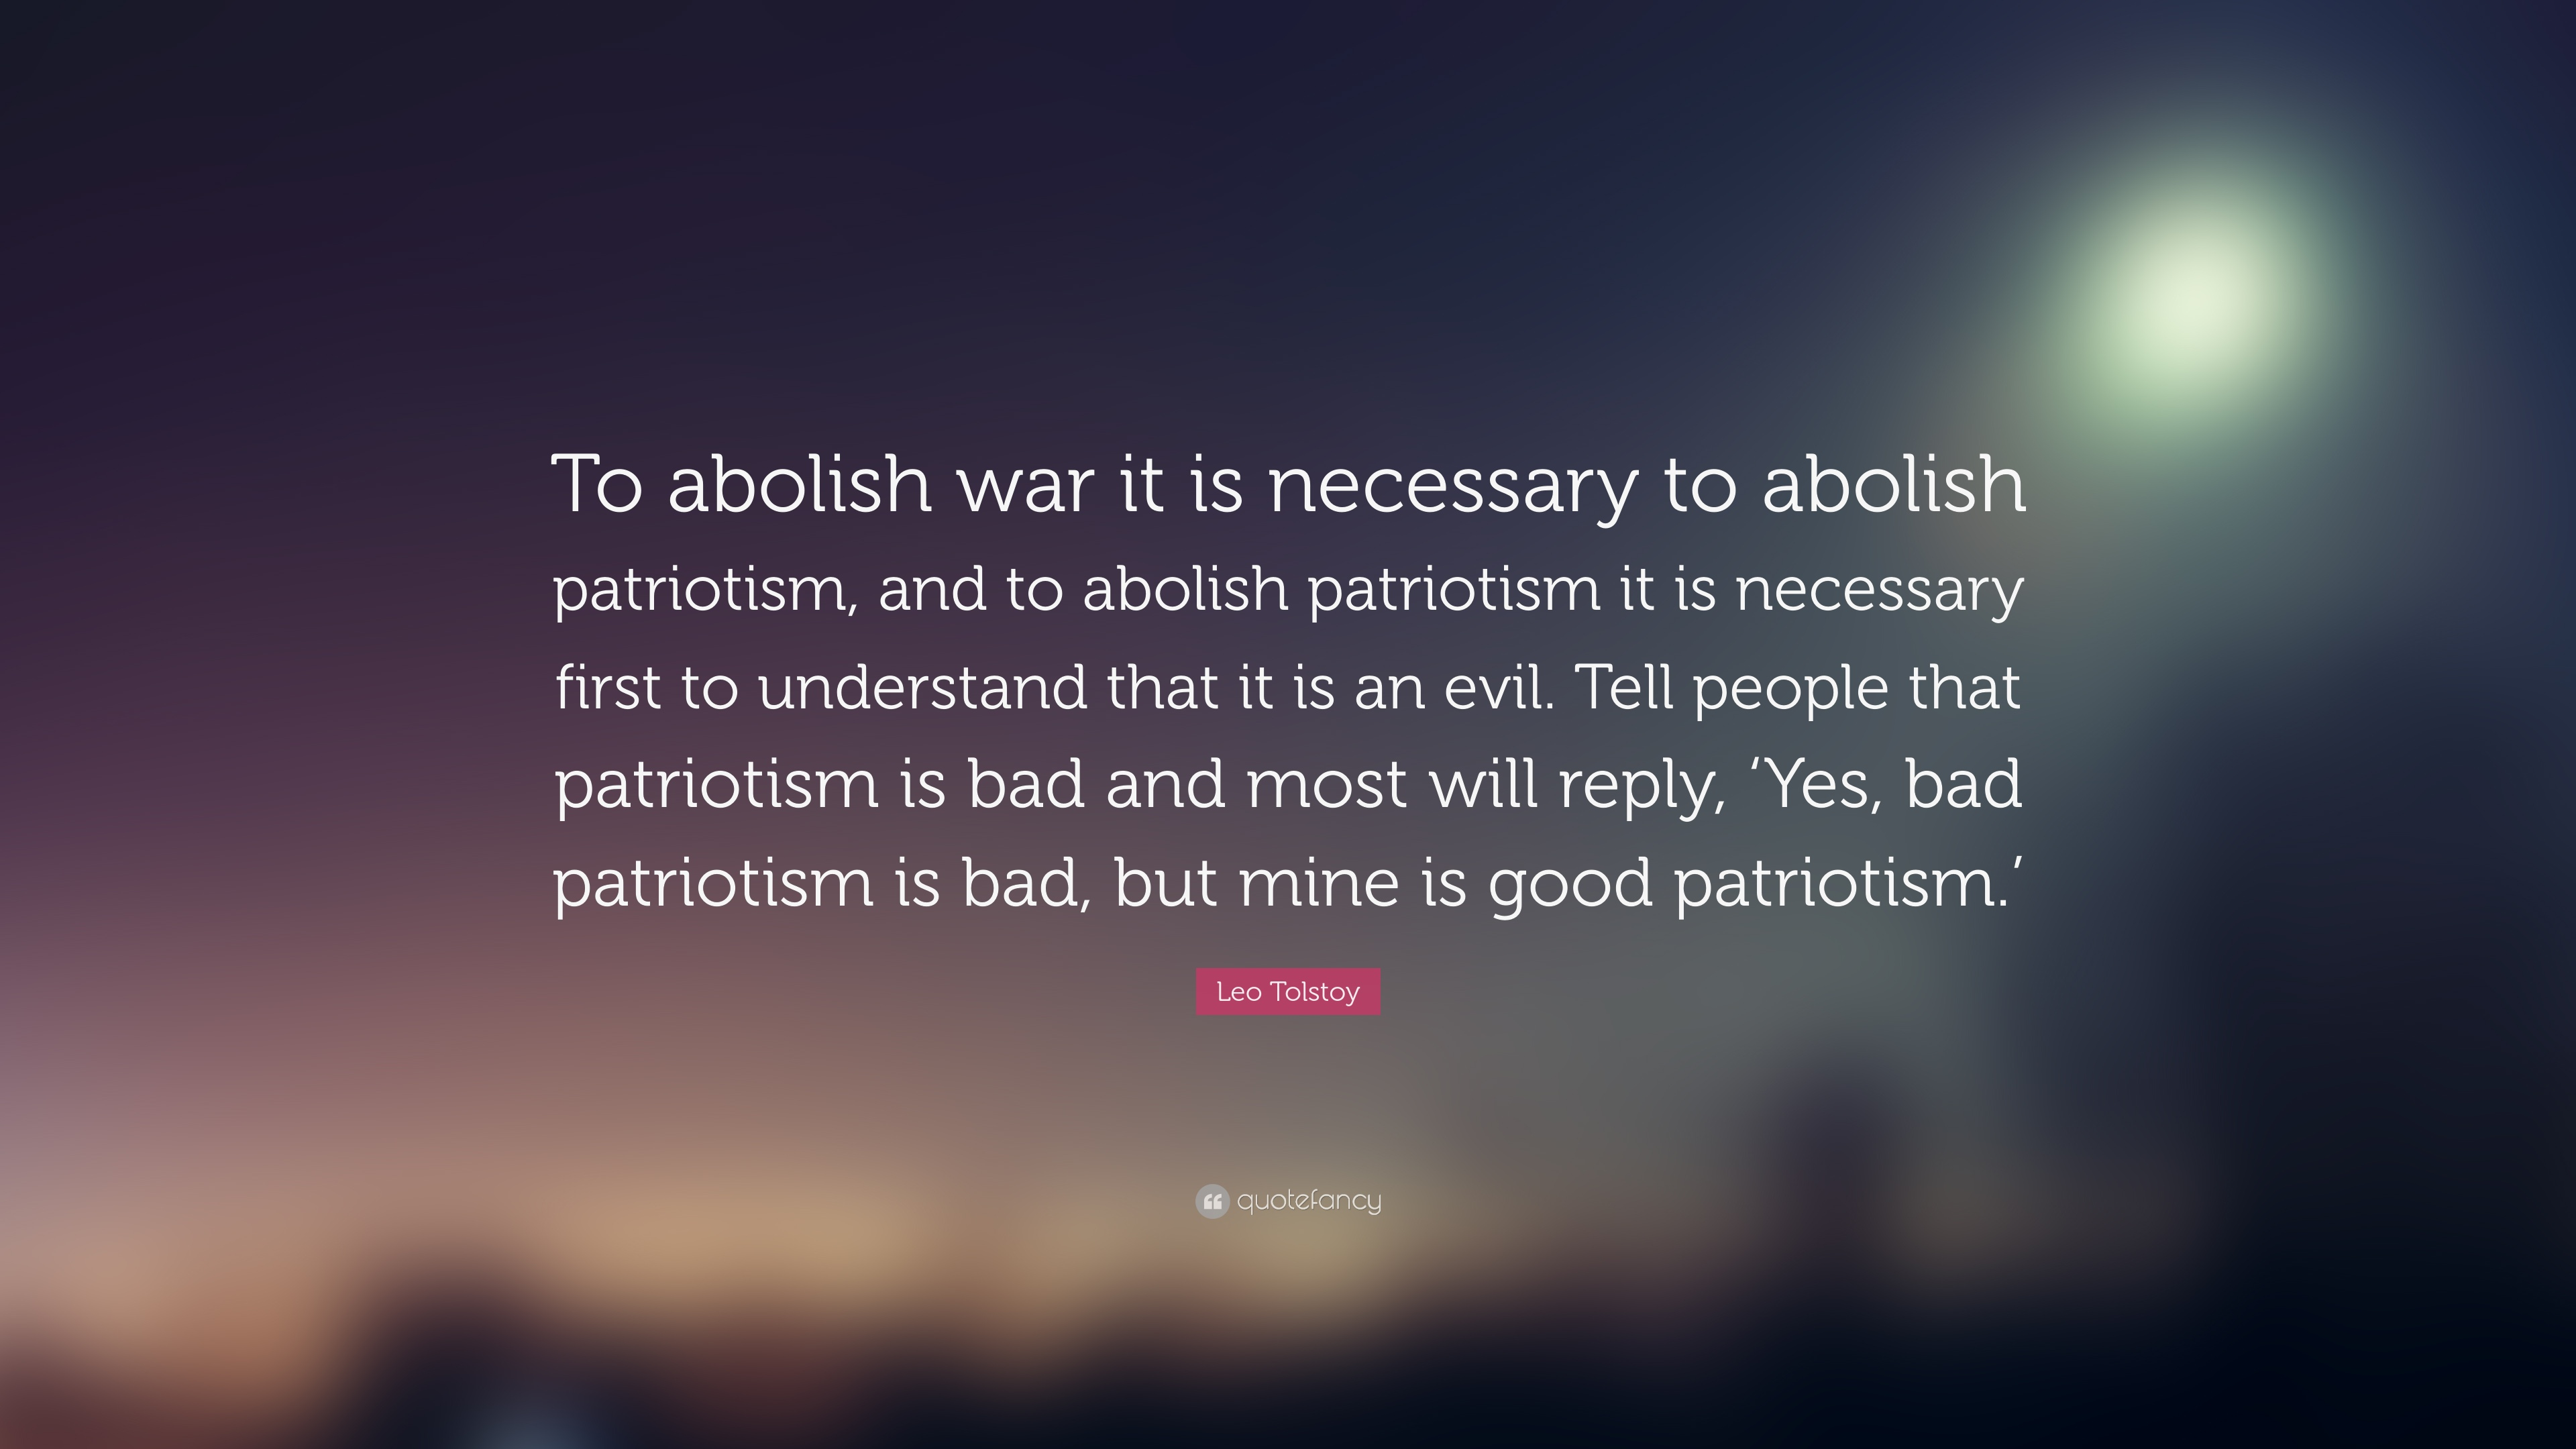 Leo Tolstoy War And Peace Quotes Pinterest thumbnail